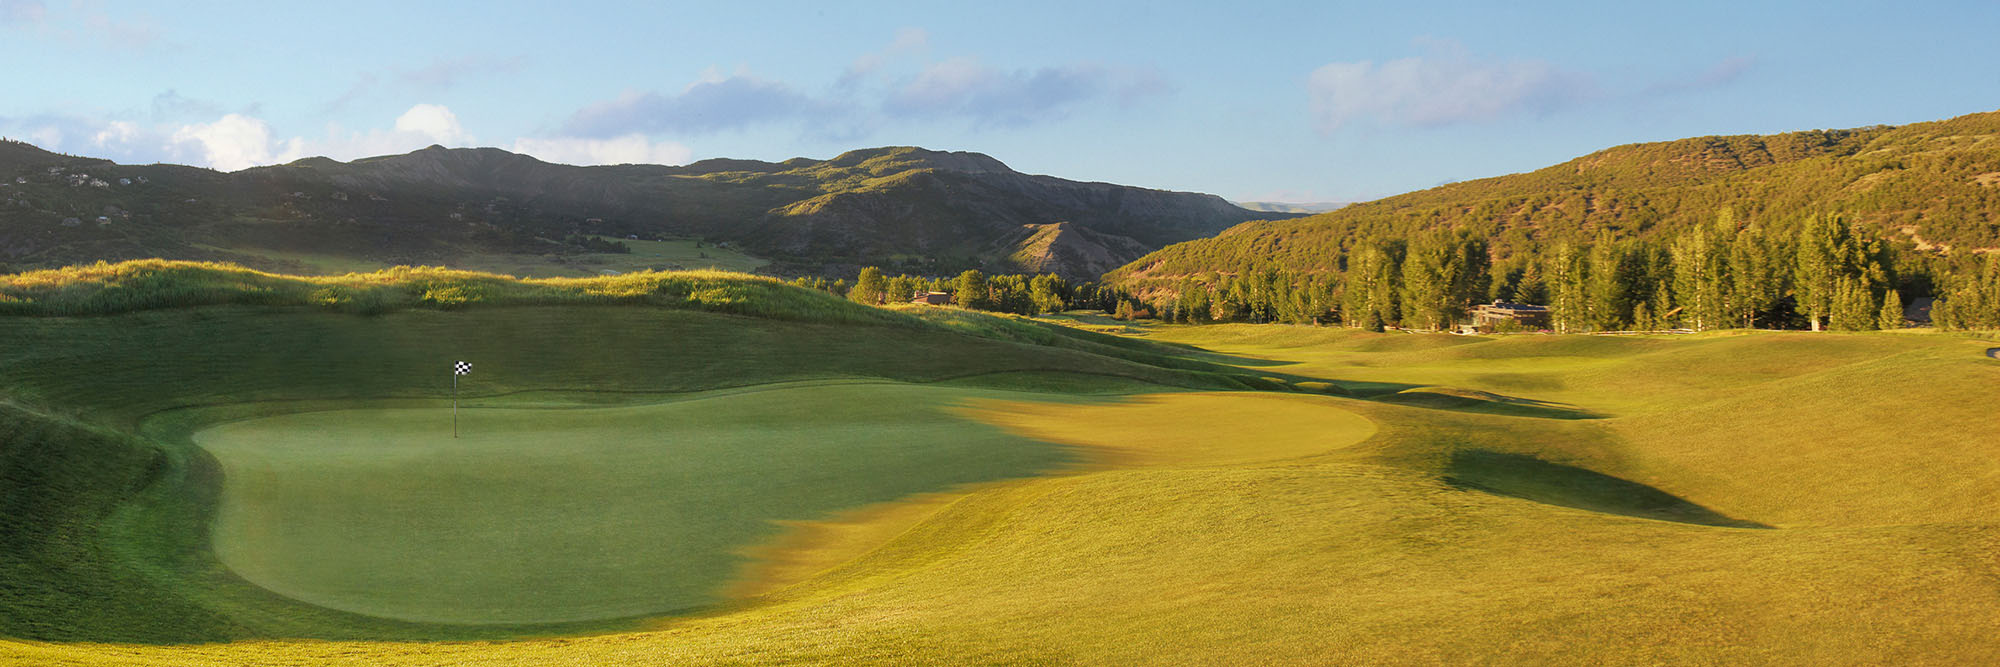 Golf Course Image - Snowmass No. 5